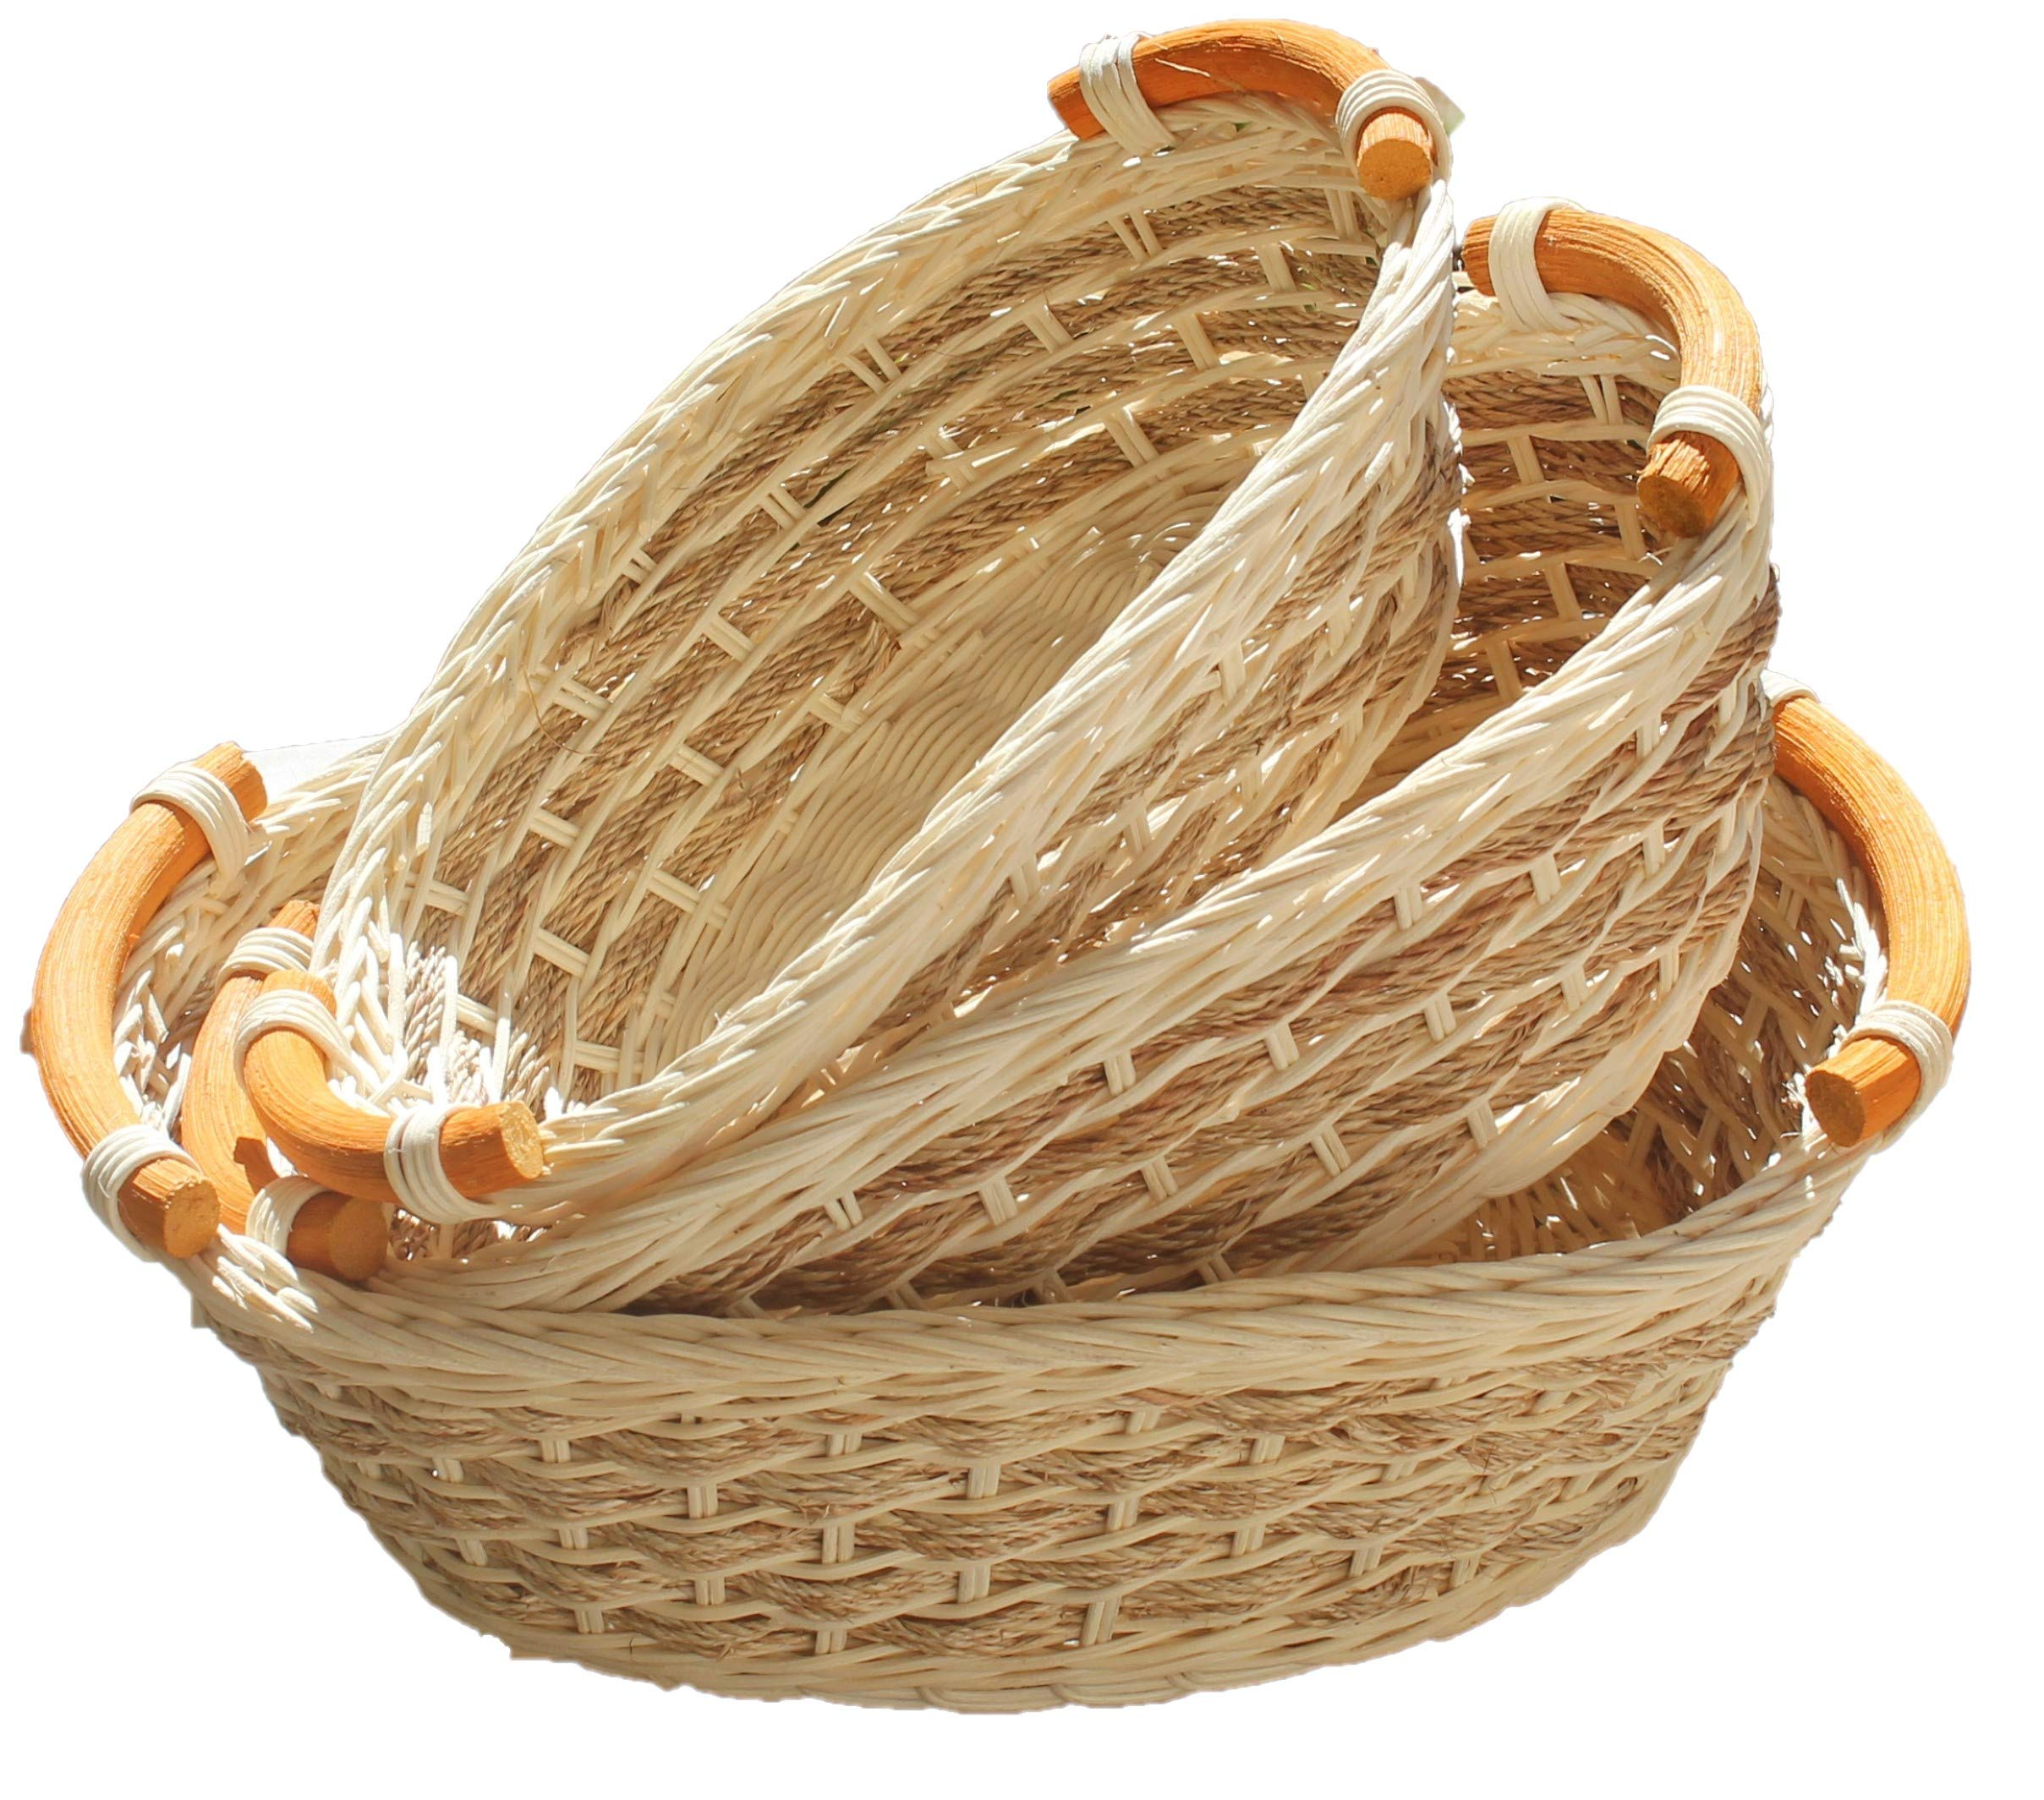 ShopOnNet RT450110-3 Handwoven Wicker Storage Basket Curve Pole Handle in Cream and Sand (Set of 3) - These are handmade eco-friendly wicker storage basket. These baskets are stackable, making storage easy and convenient. Made with durable rattan/Wicker material and each comes with a curve pole handle on each end of the basket. These wicker storage baskets are ideal to have at the dining table for holding bread or bake goods or for holding extra utensils for unexpected guests. They are also perfect to have in the kitchen or bathroom for holding napkins, cotton balls or other beauty tools and products. - living-room-decor, living-room, baskets-storage - 81tsn8IdkKL -